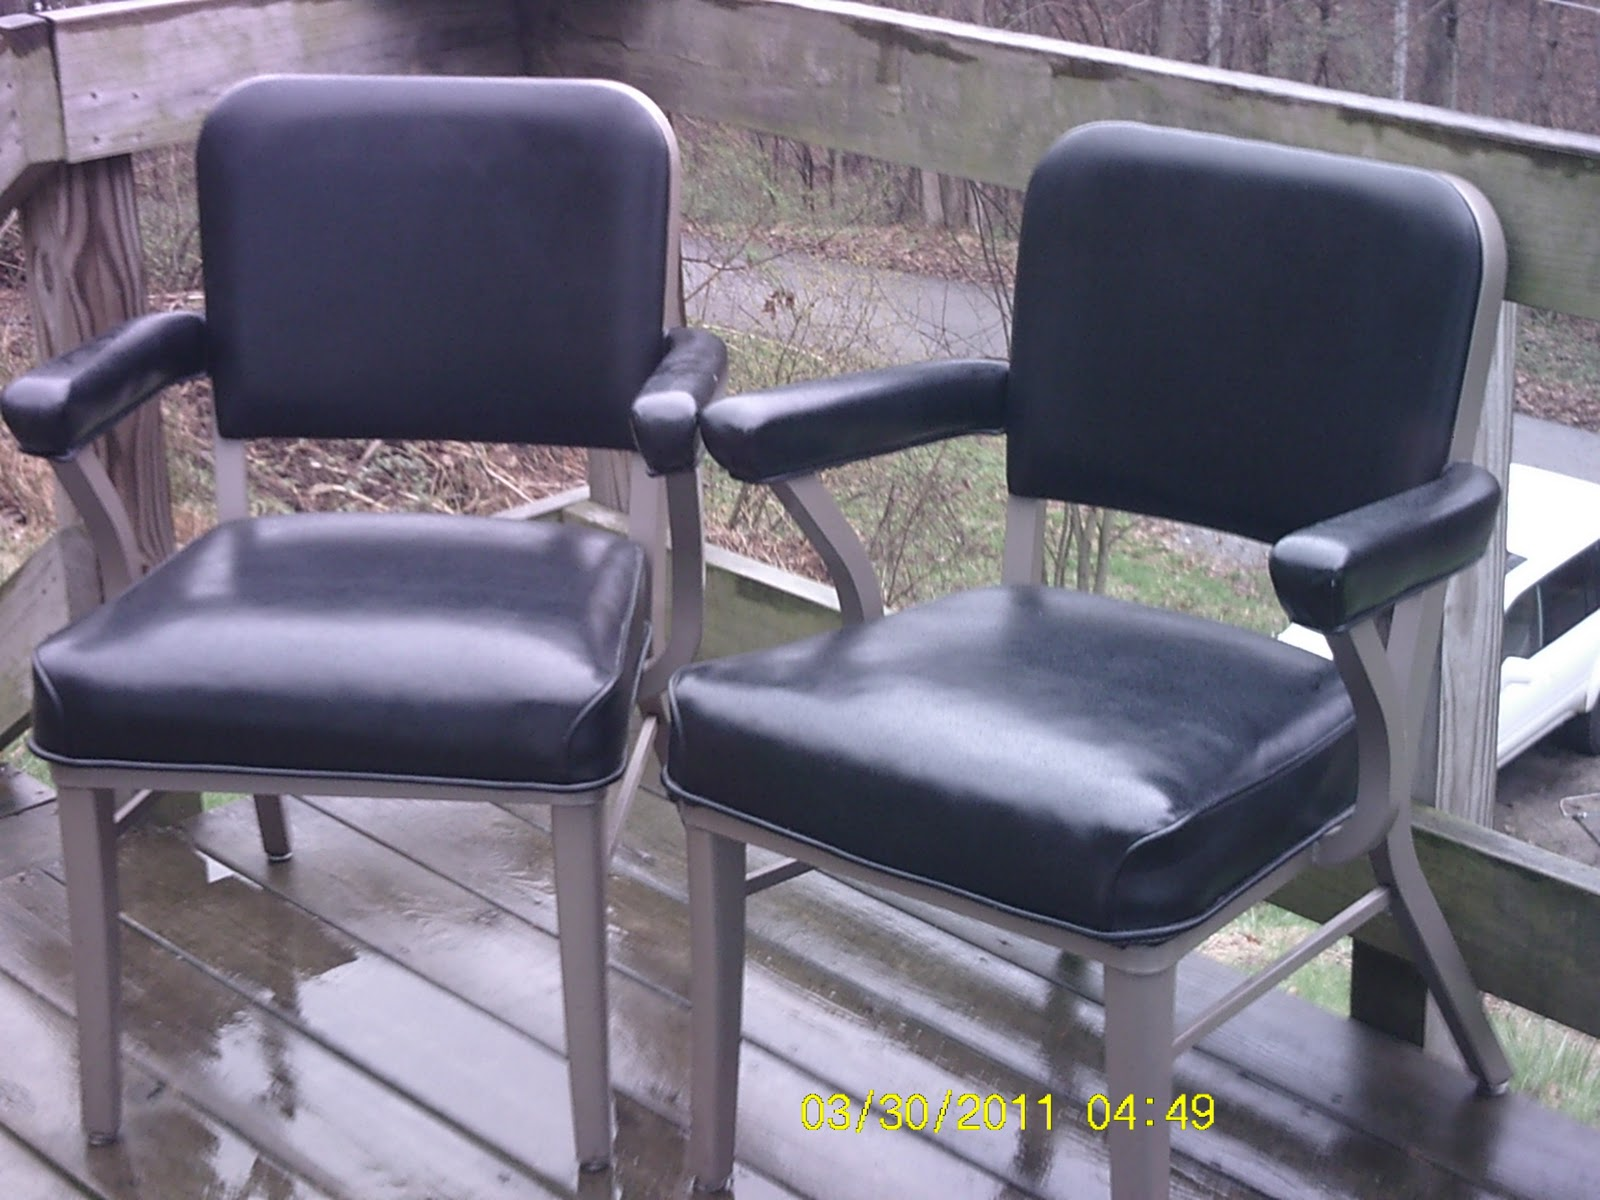 Vintage steelcase chairs - Steelcase Chairs 175 Ea